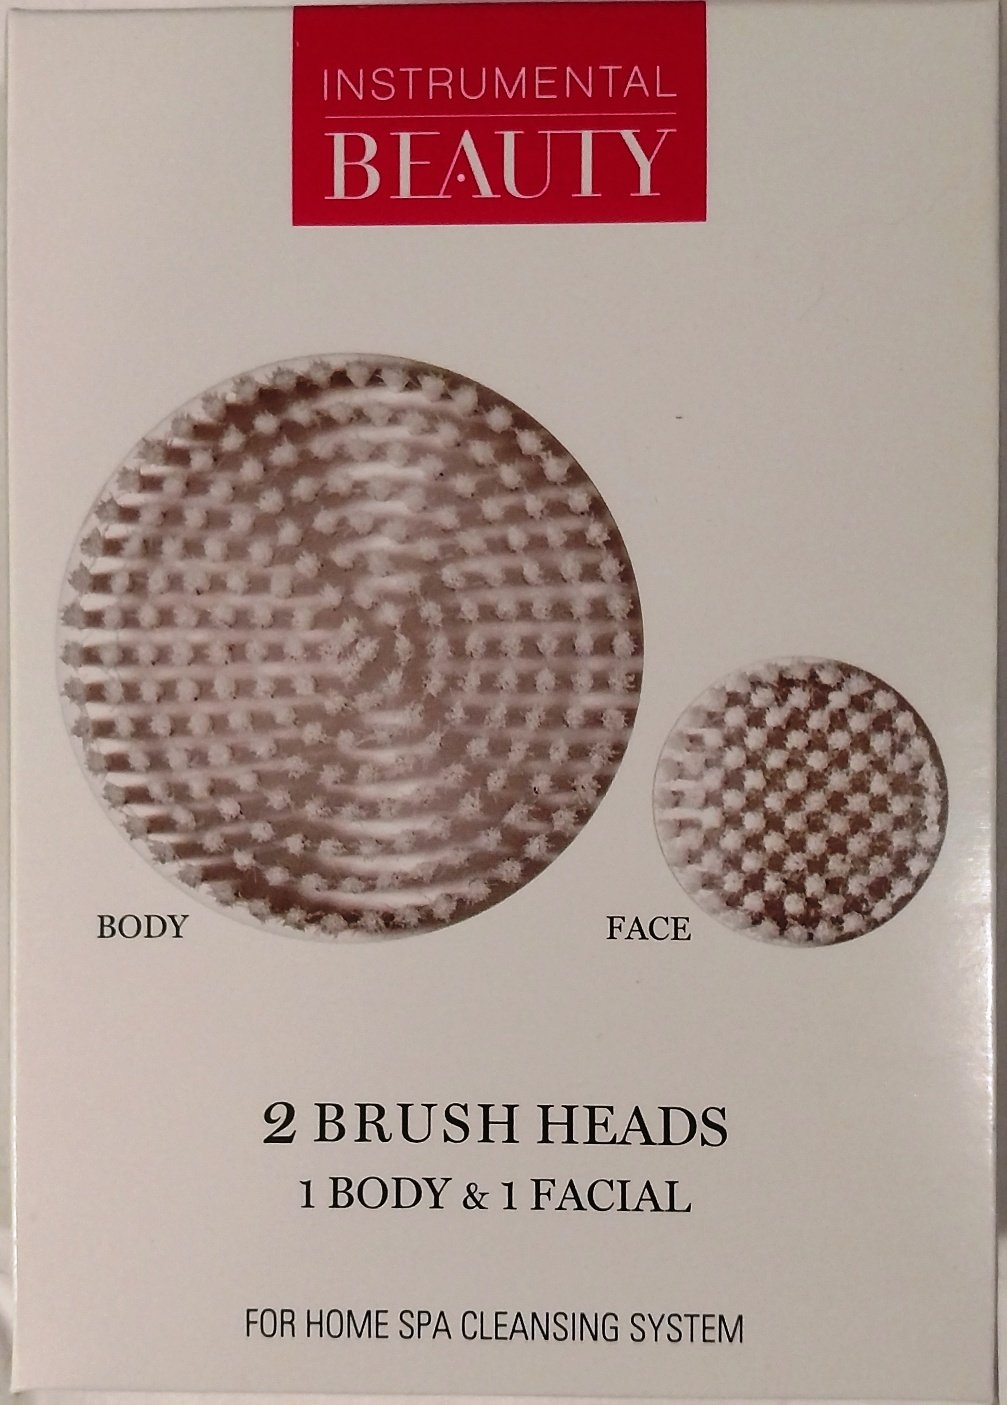 Instrumental Beauty Home Spa Brush Refills, 2 Count Lornamead Brands Inc